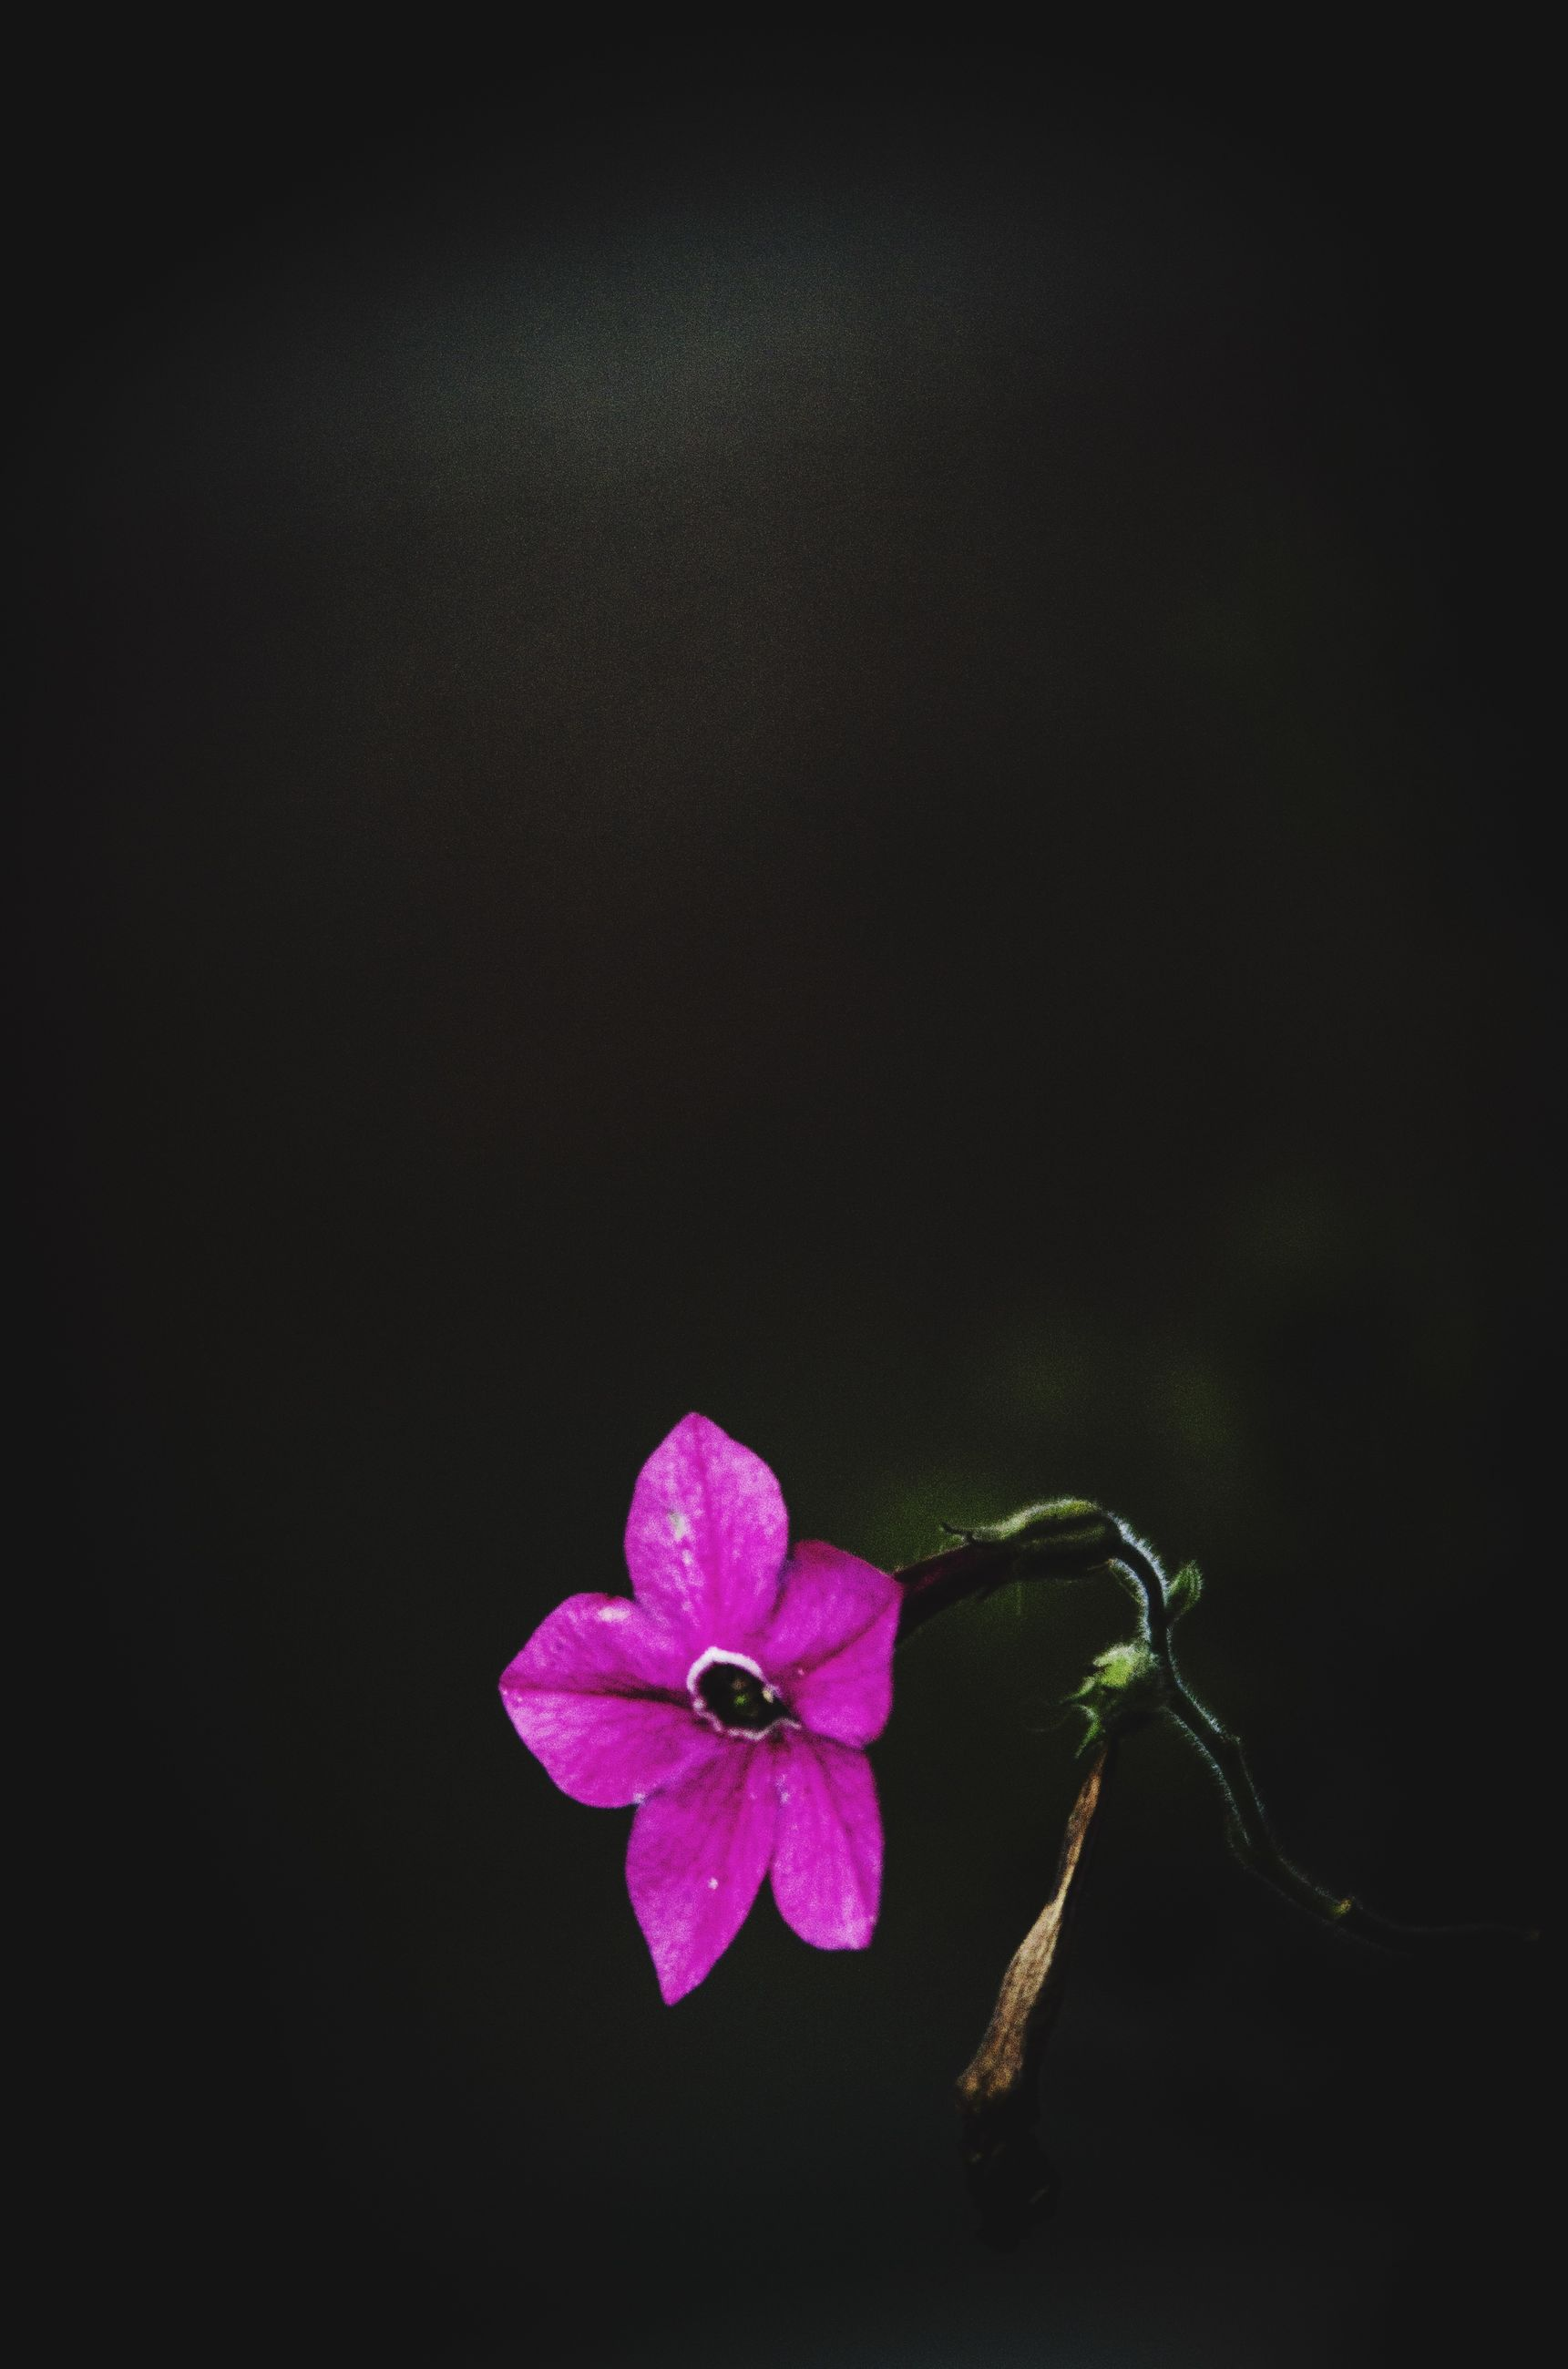 flower, petal, fragility, freshness, pink color, beauty in nature, flower head, studio shot, close-up, copy space, growth, nature, purple, blooming, pink, plant, in bloom, no people, black background, high angle view